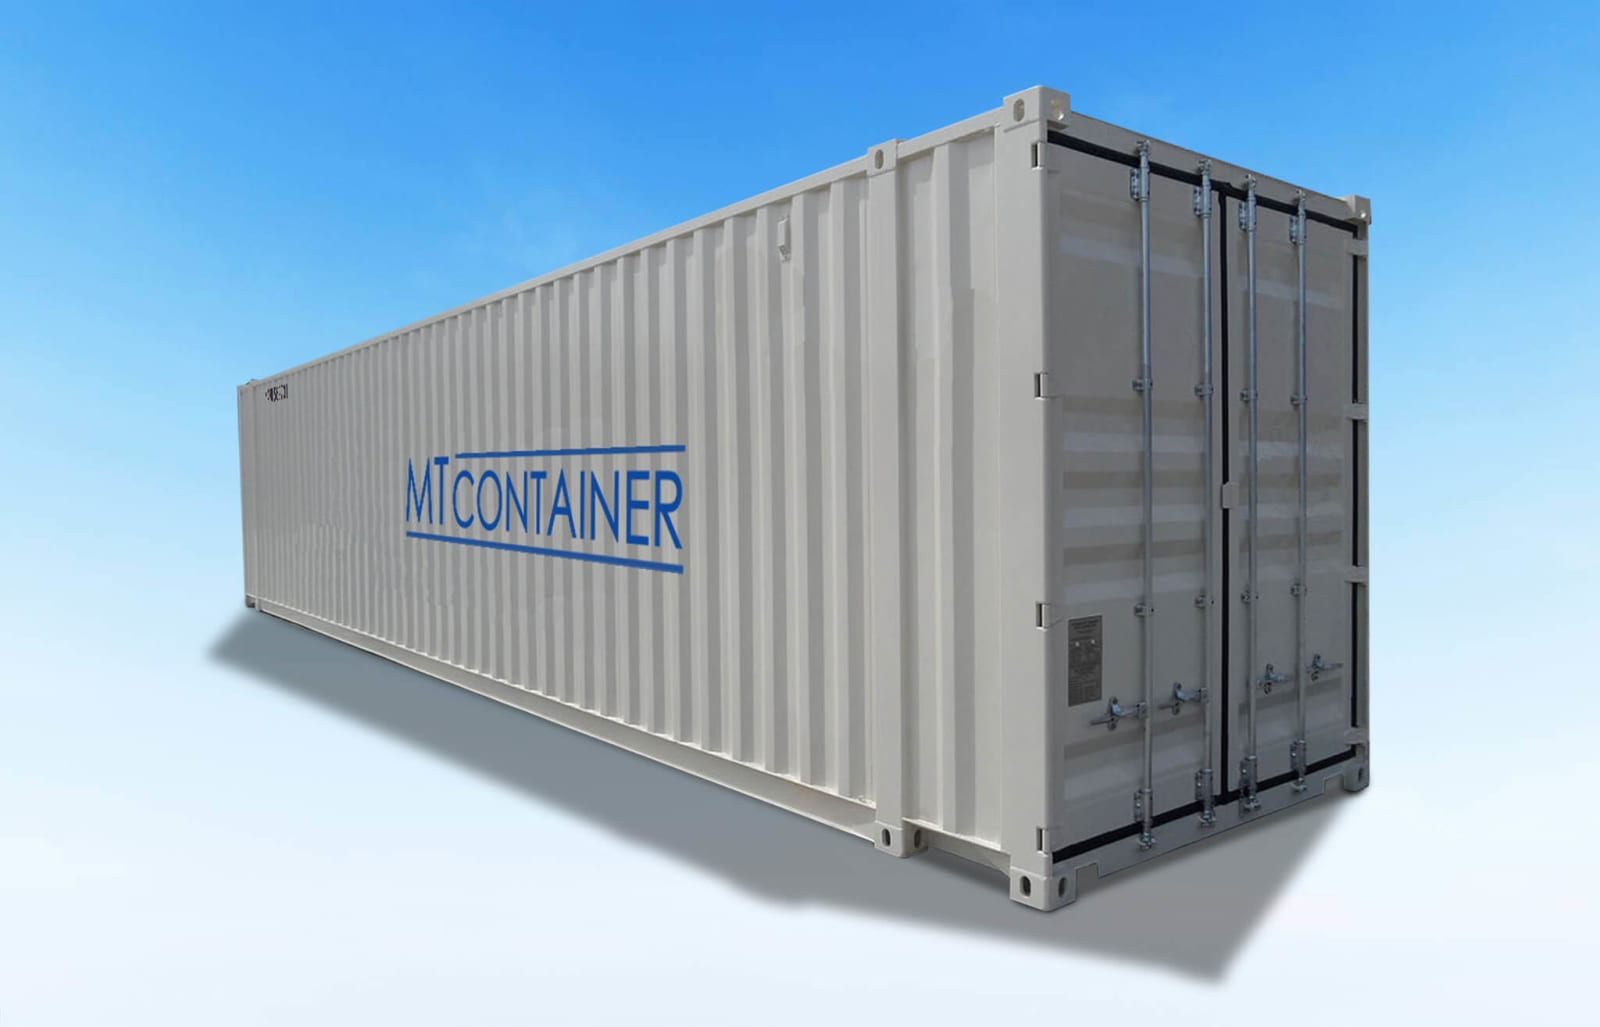 Grauer 40-Fuß-Container-Seecontainer